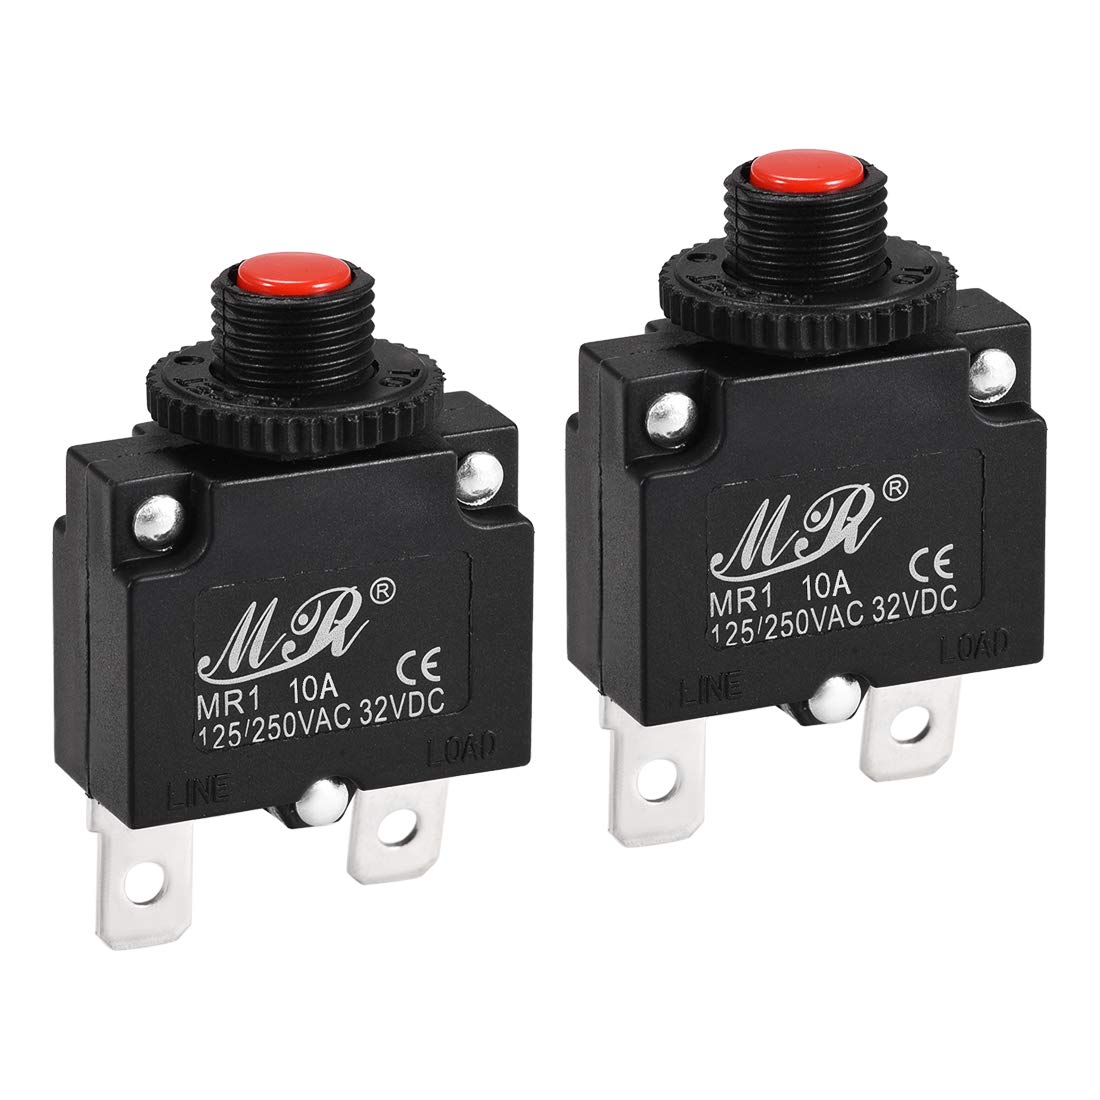 uxcell Thermal Circuit Breaker 20 Amp Push Button Reset Overload Protector 125//250V AC 32V DC with Quick Connect Terminal 2 Pcs